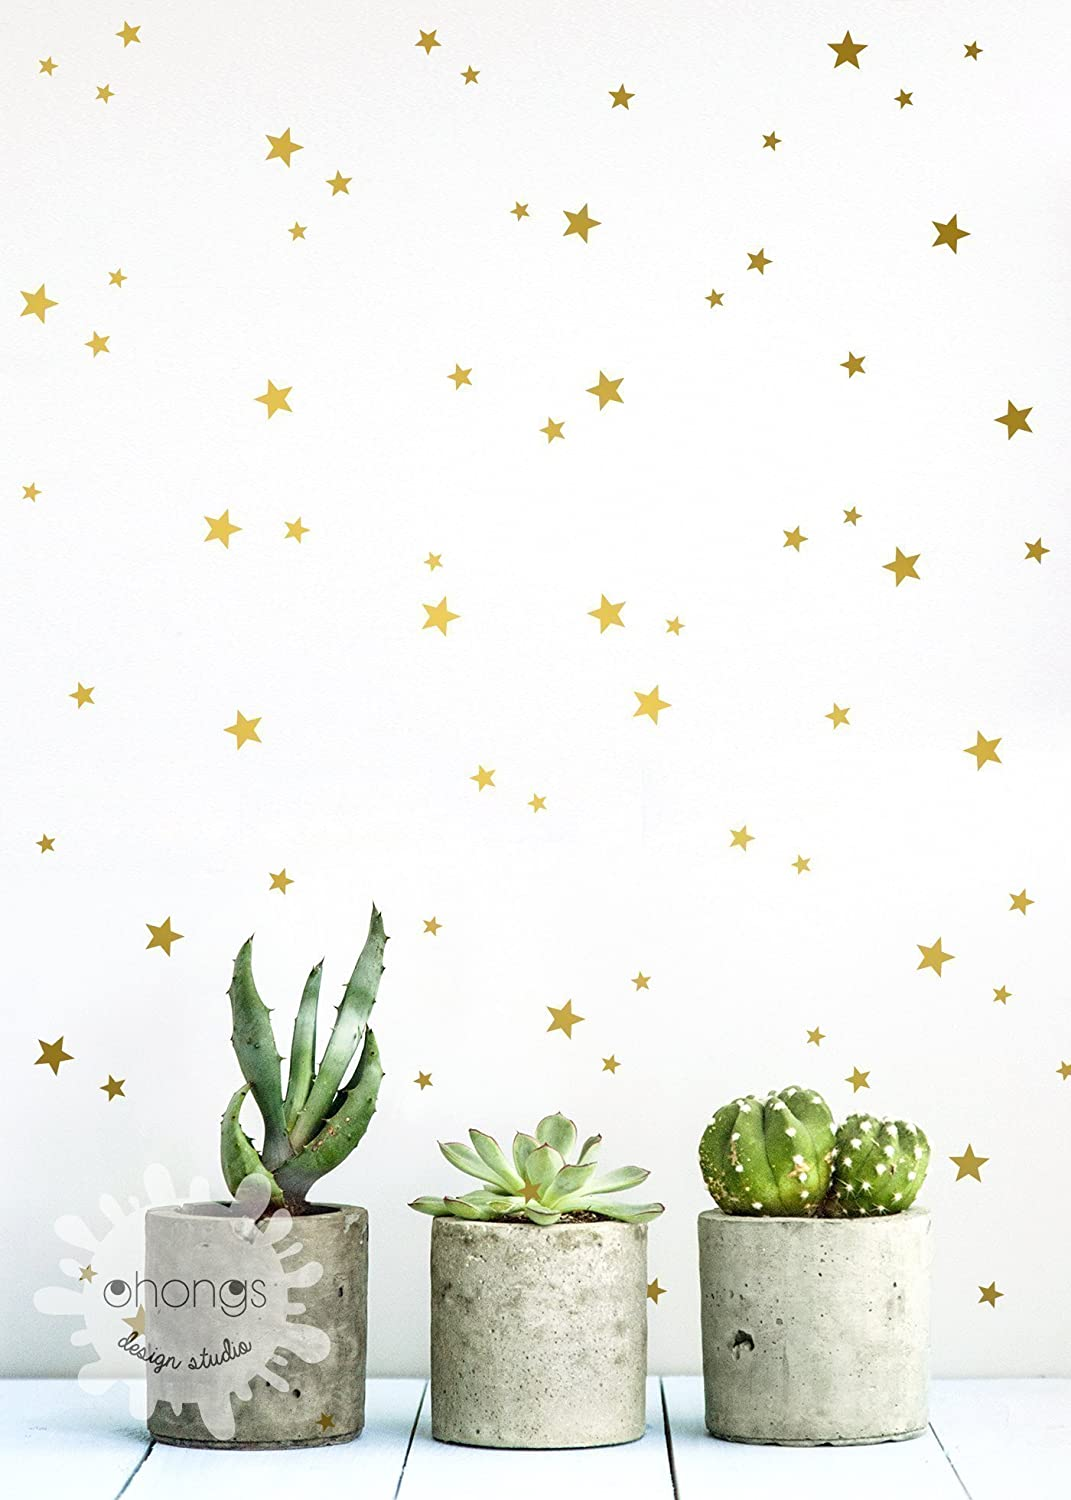 A Star in the room / Star wall decal / Mini Size and Custom color Star Pack / 3 Size Stars Decal Set / Kids wall decoration / Nursery Wall Decal / gift